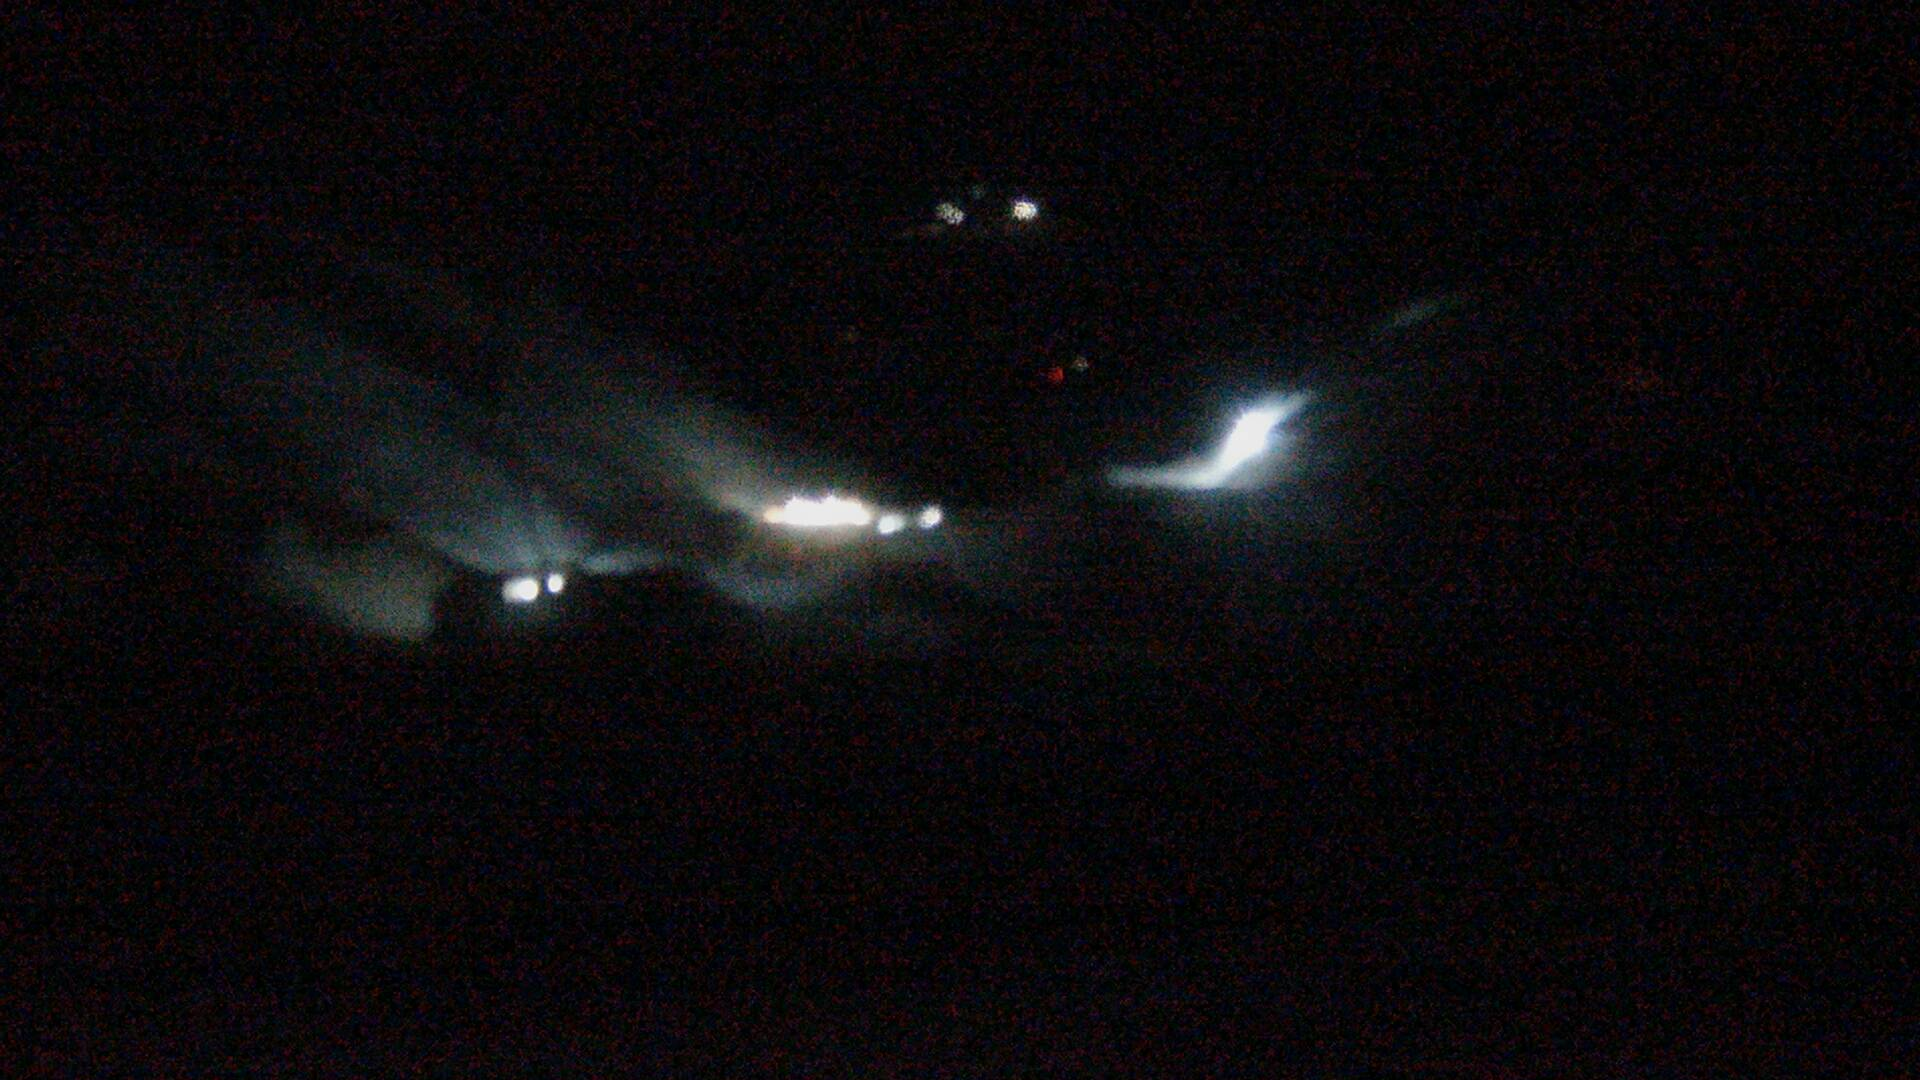 The Remarkables - Curvey Basin From The Top